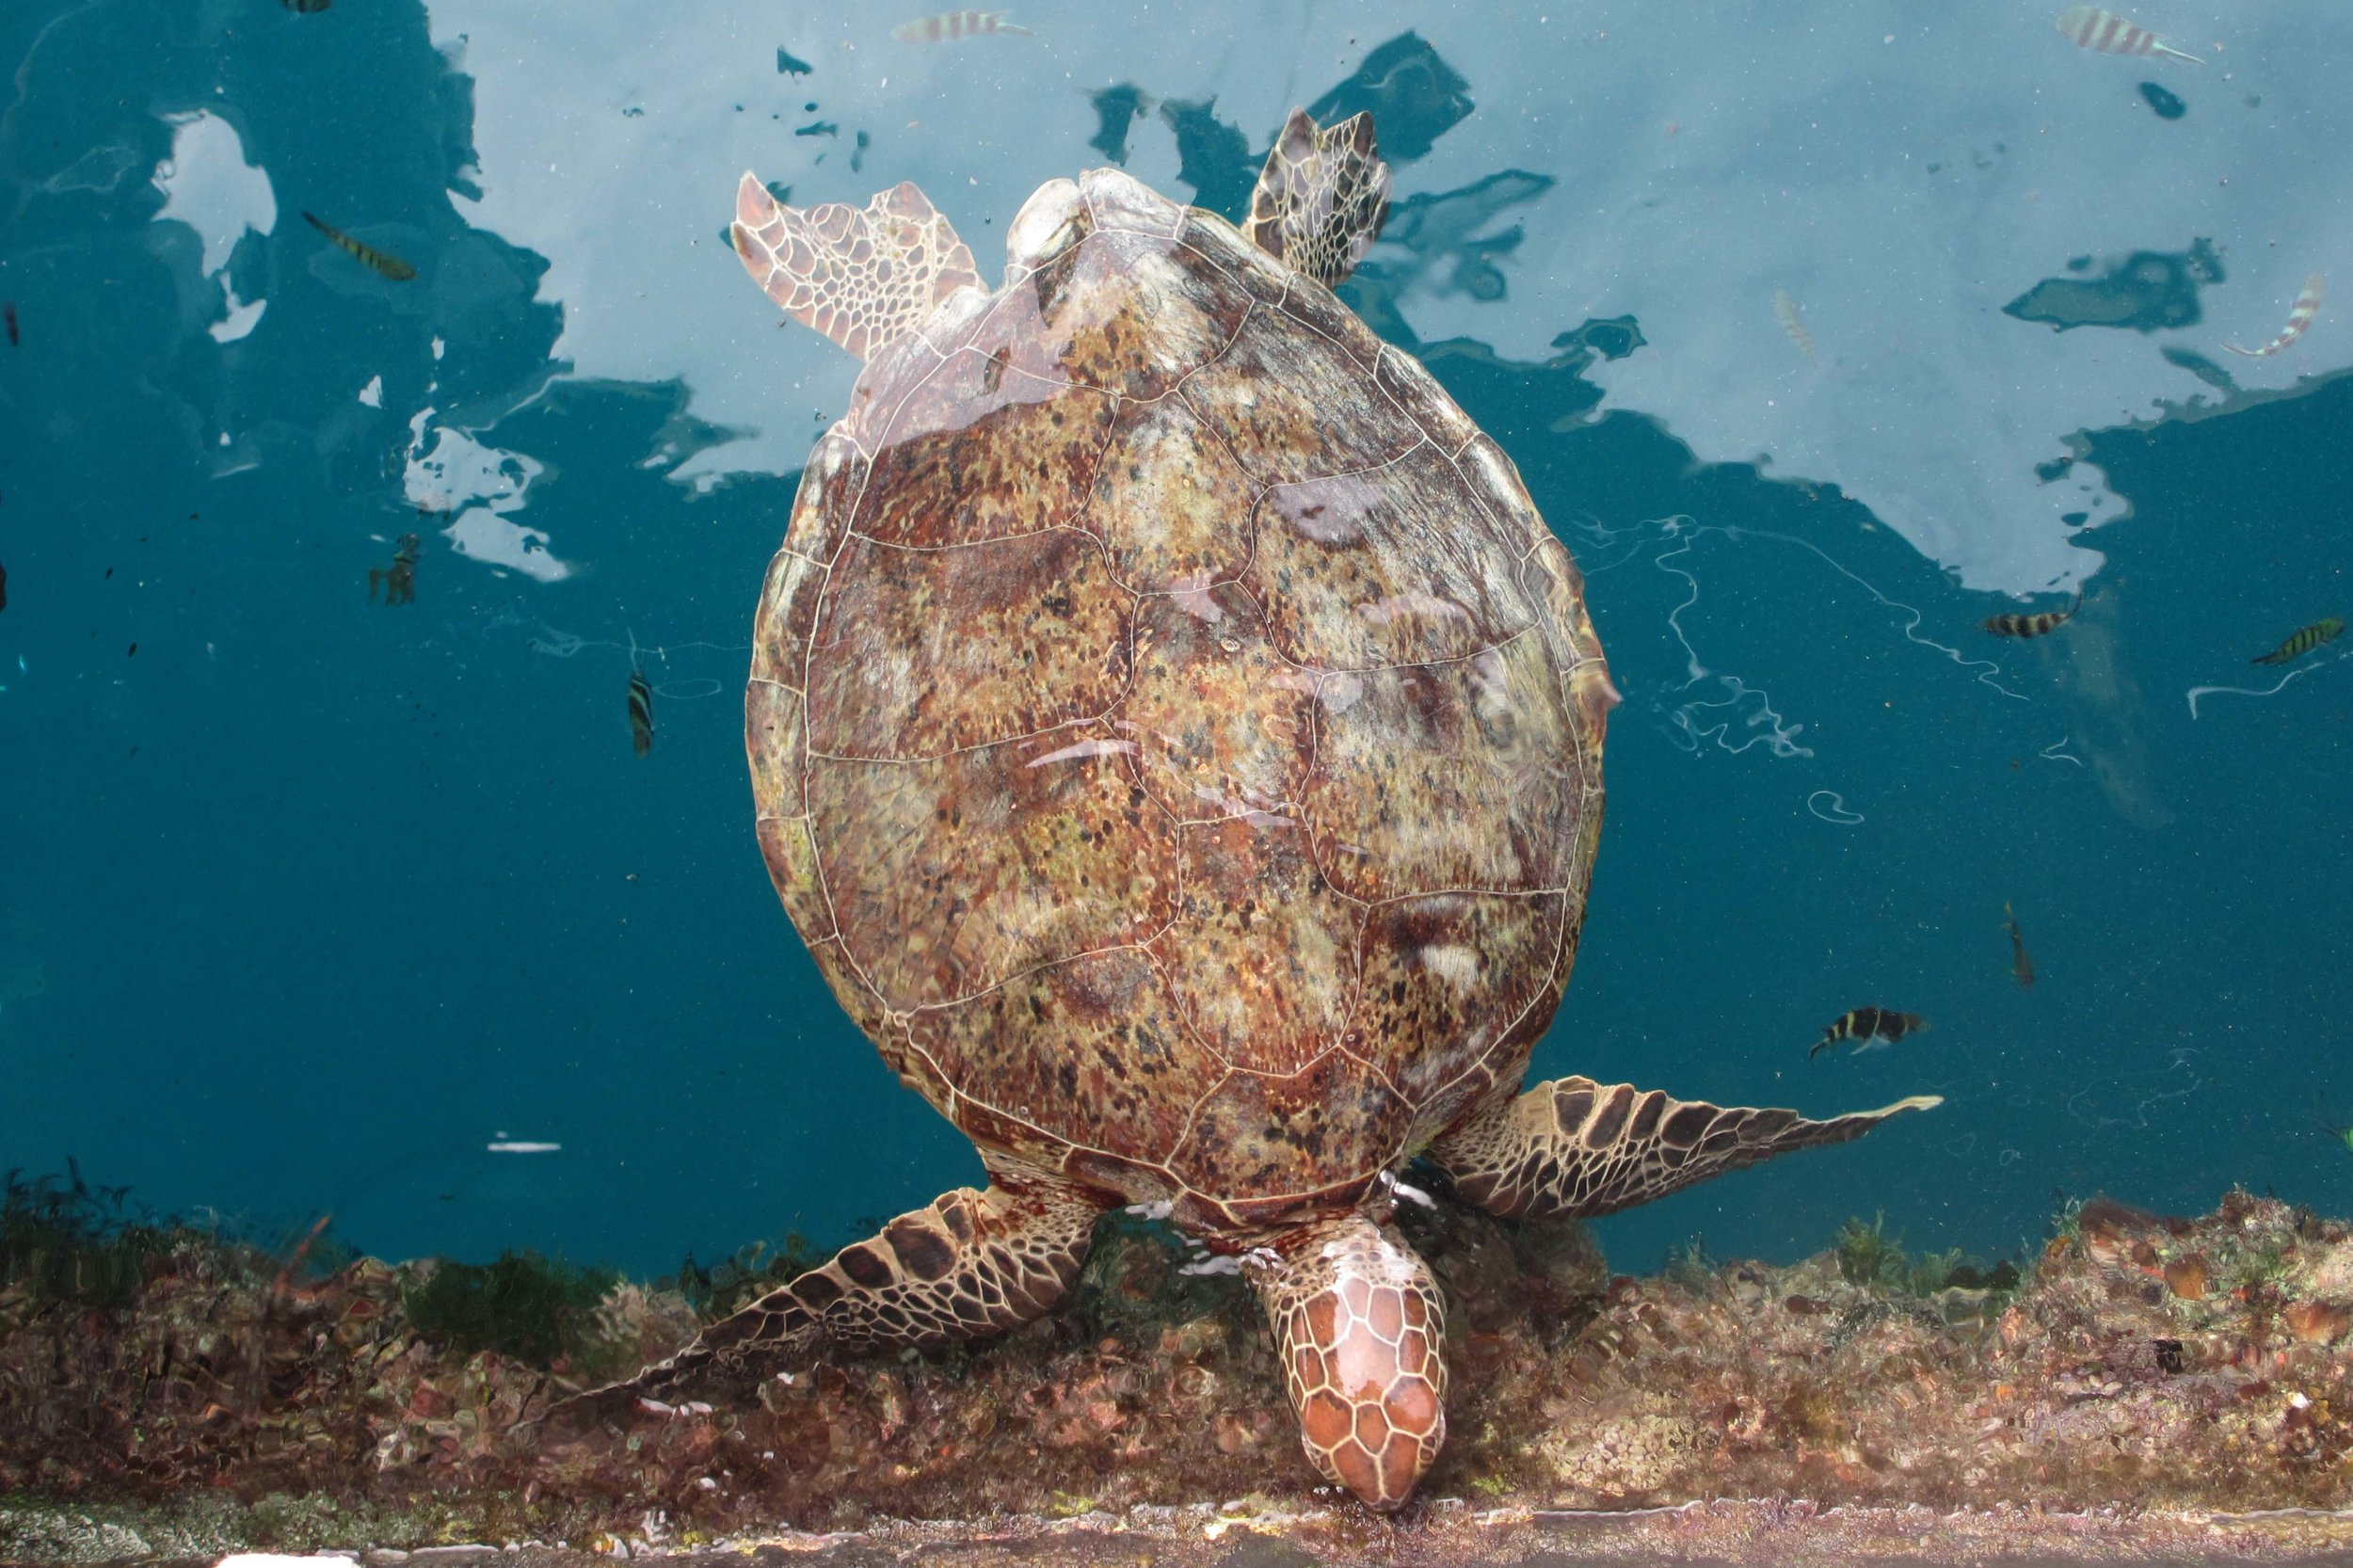 A green turtle snacks on the edge of the pontoon. Image by Sarah Reid ©